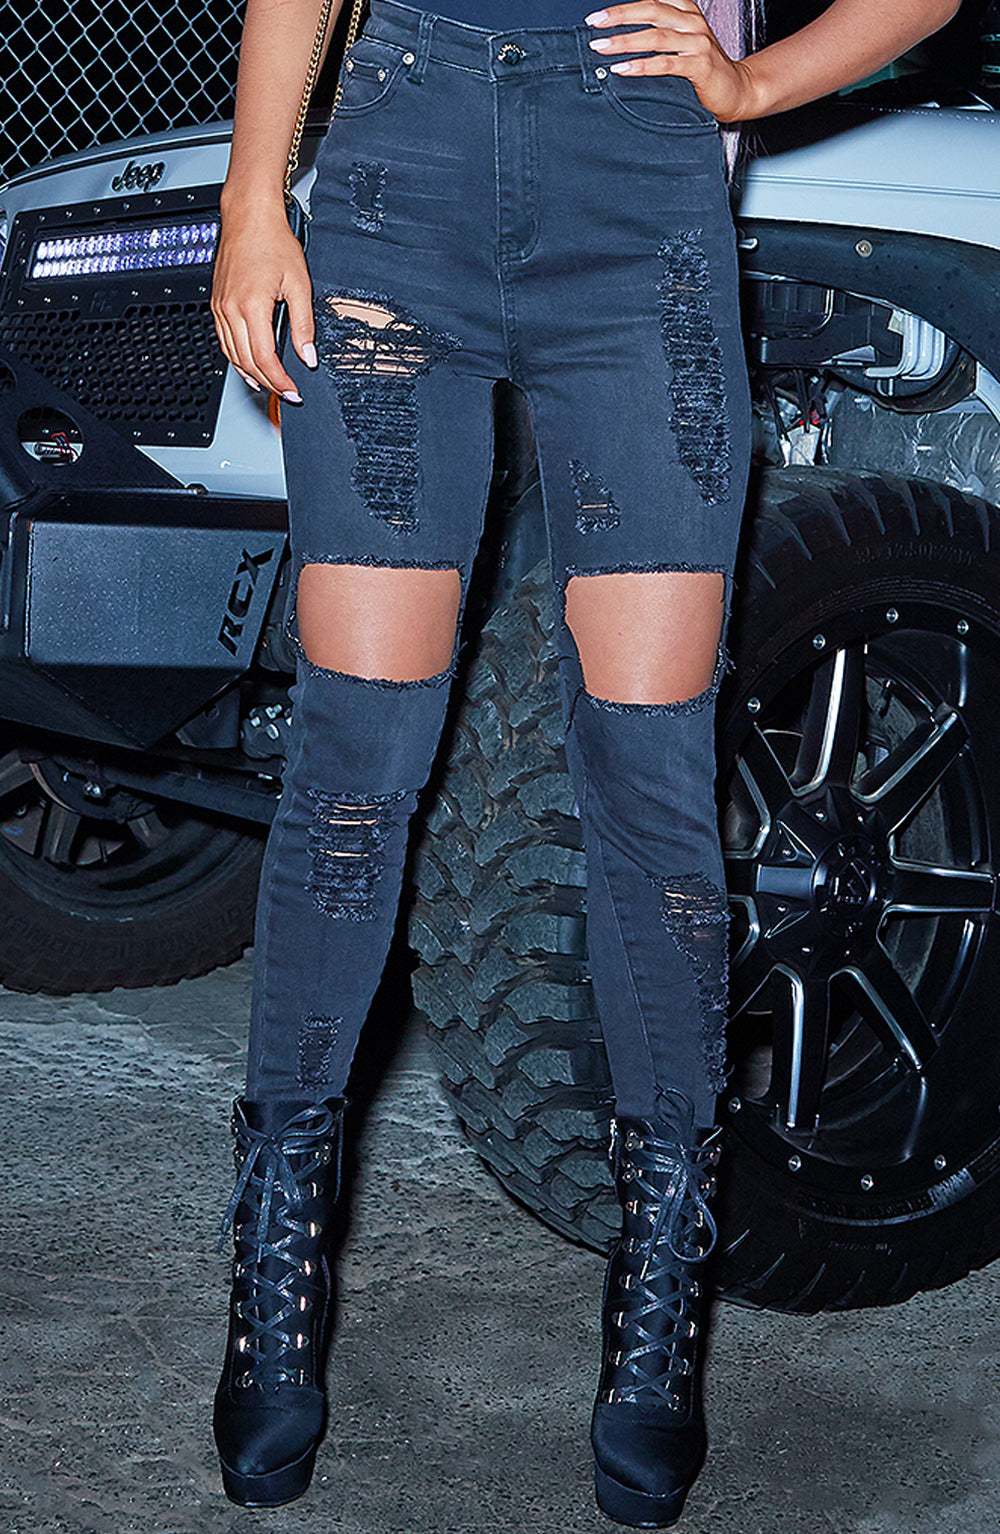 Shani Grimmond x Babyboo - Feelin it Jeans - Black